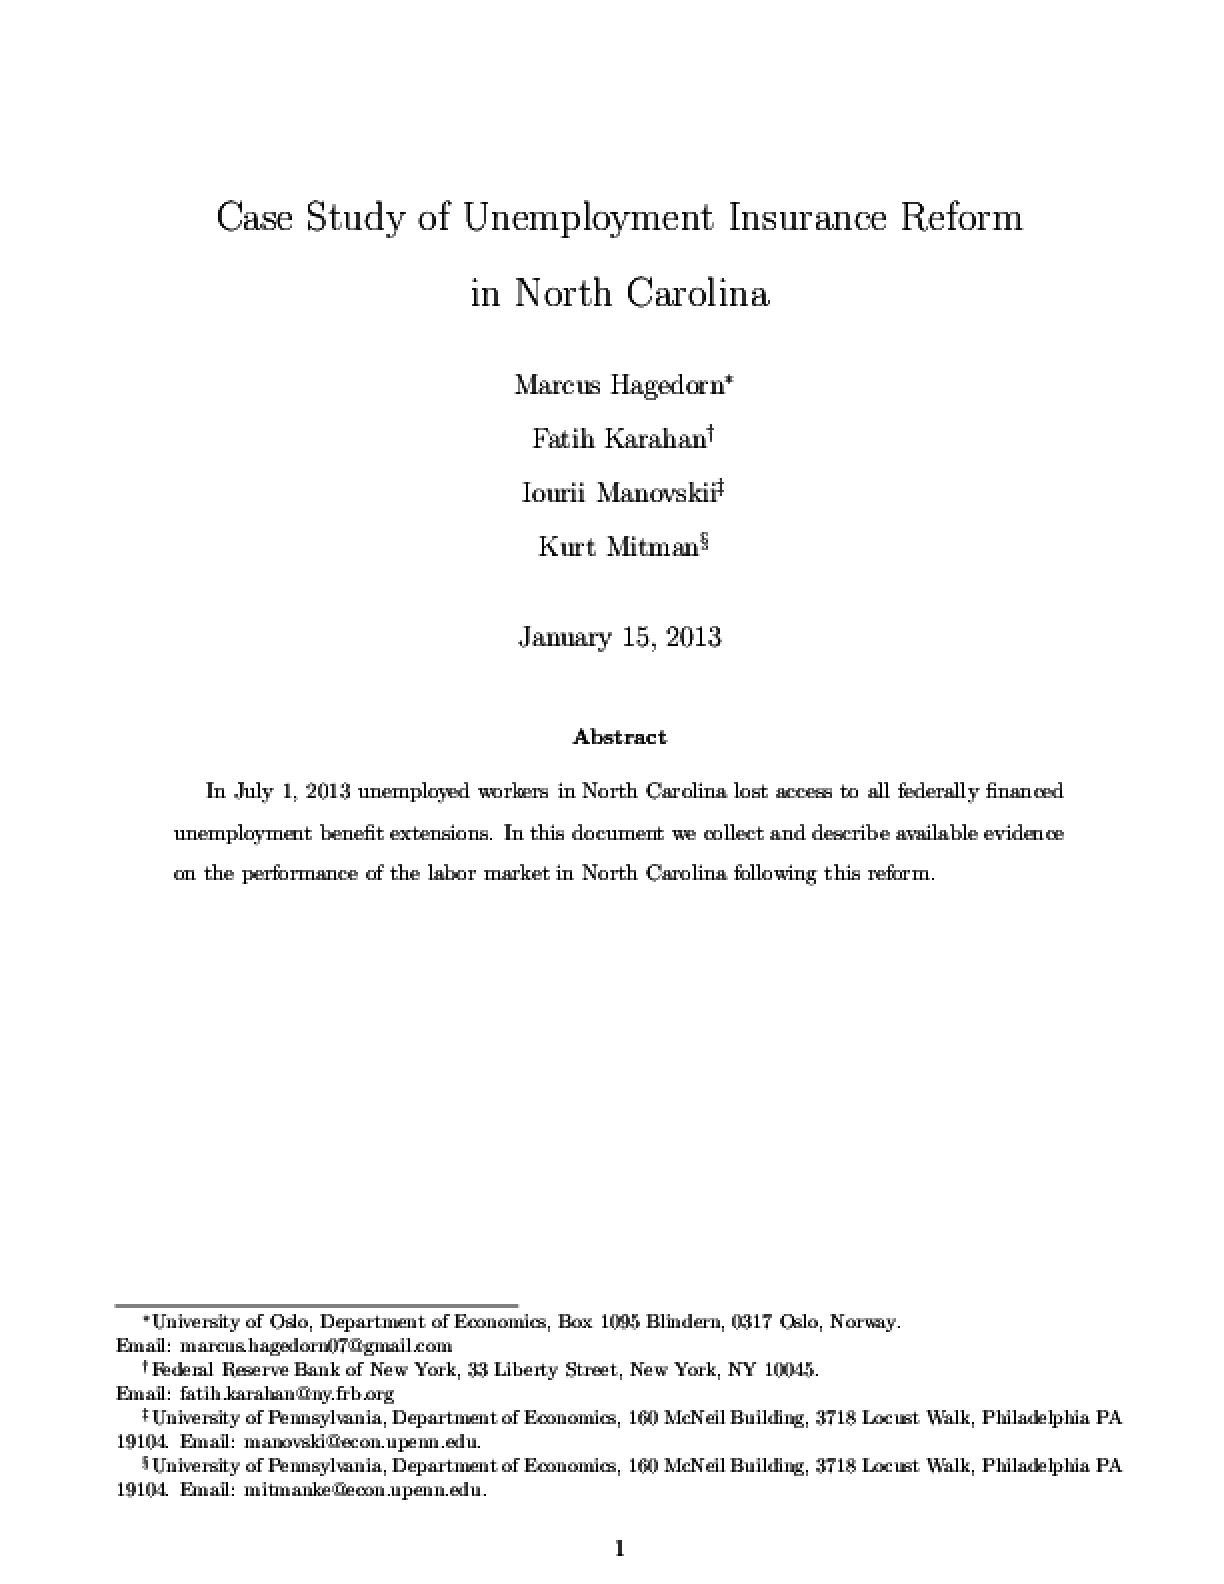 Case Study of Unemployment Insurance Reform in North Carolina